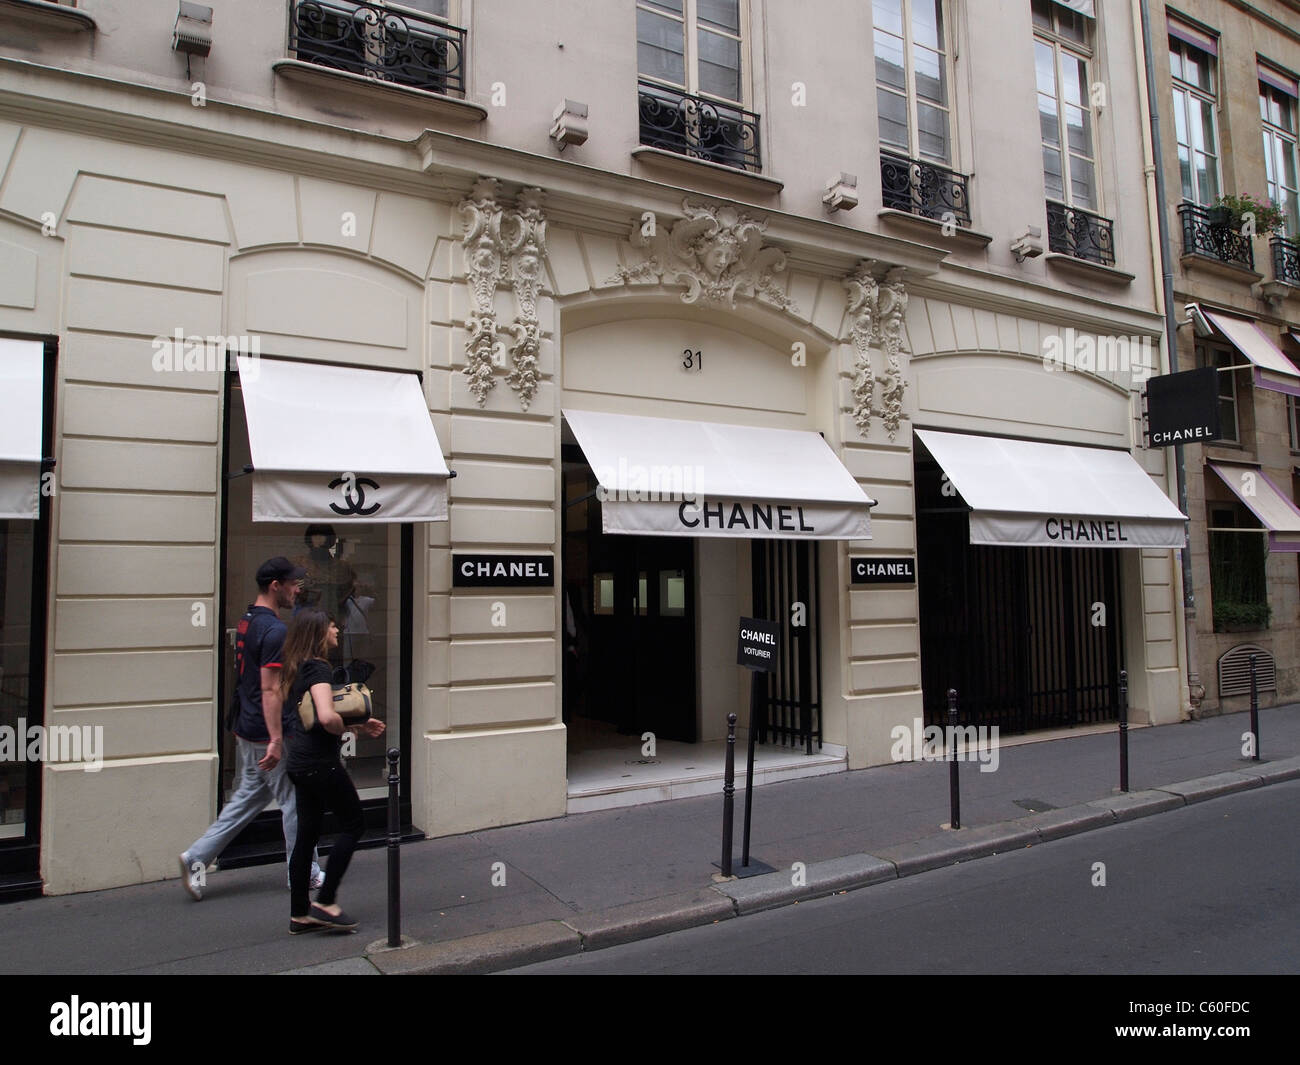 chanel 31 rue cambon paris. stock photo - the famous chanel shop rue cambon 31 in paris, france. this fashion was founded by coco 1915 paris r